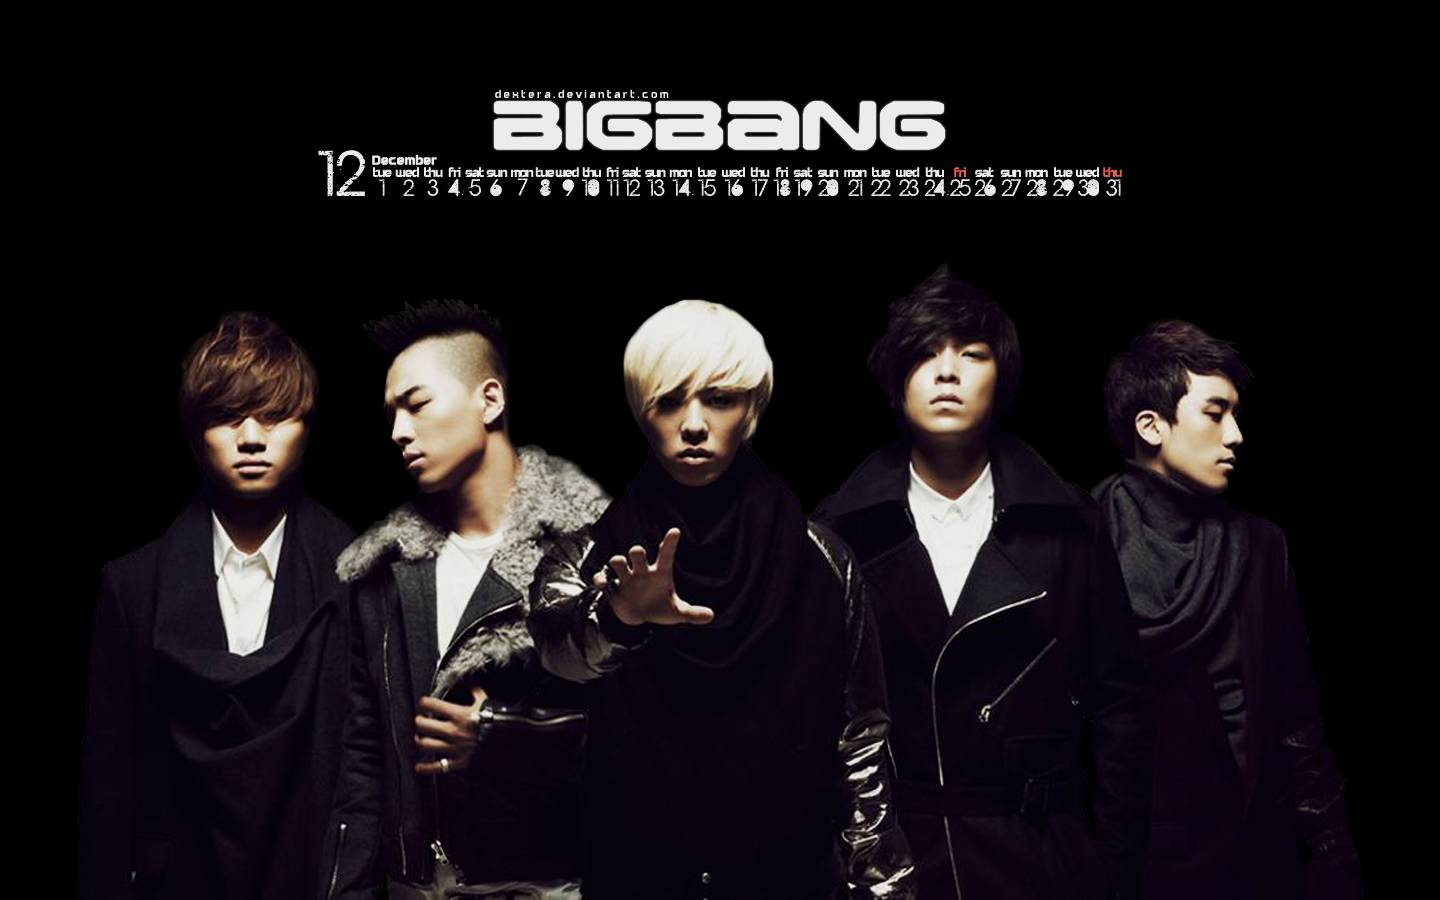 Big Bang K Pop Wallpapers Top Free Big Bang K Pop Backgrounds Wallpaperaccess